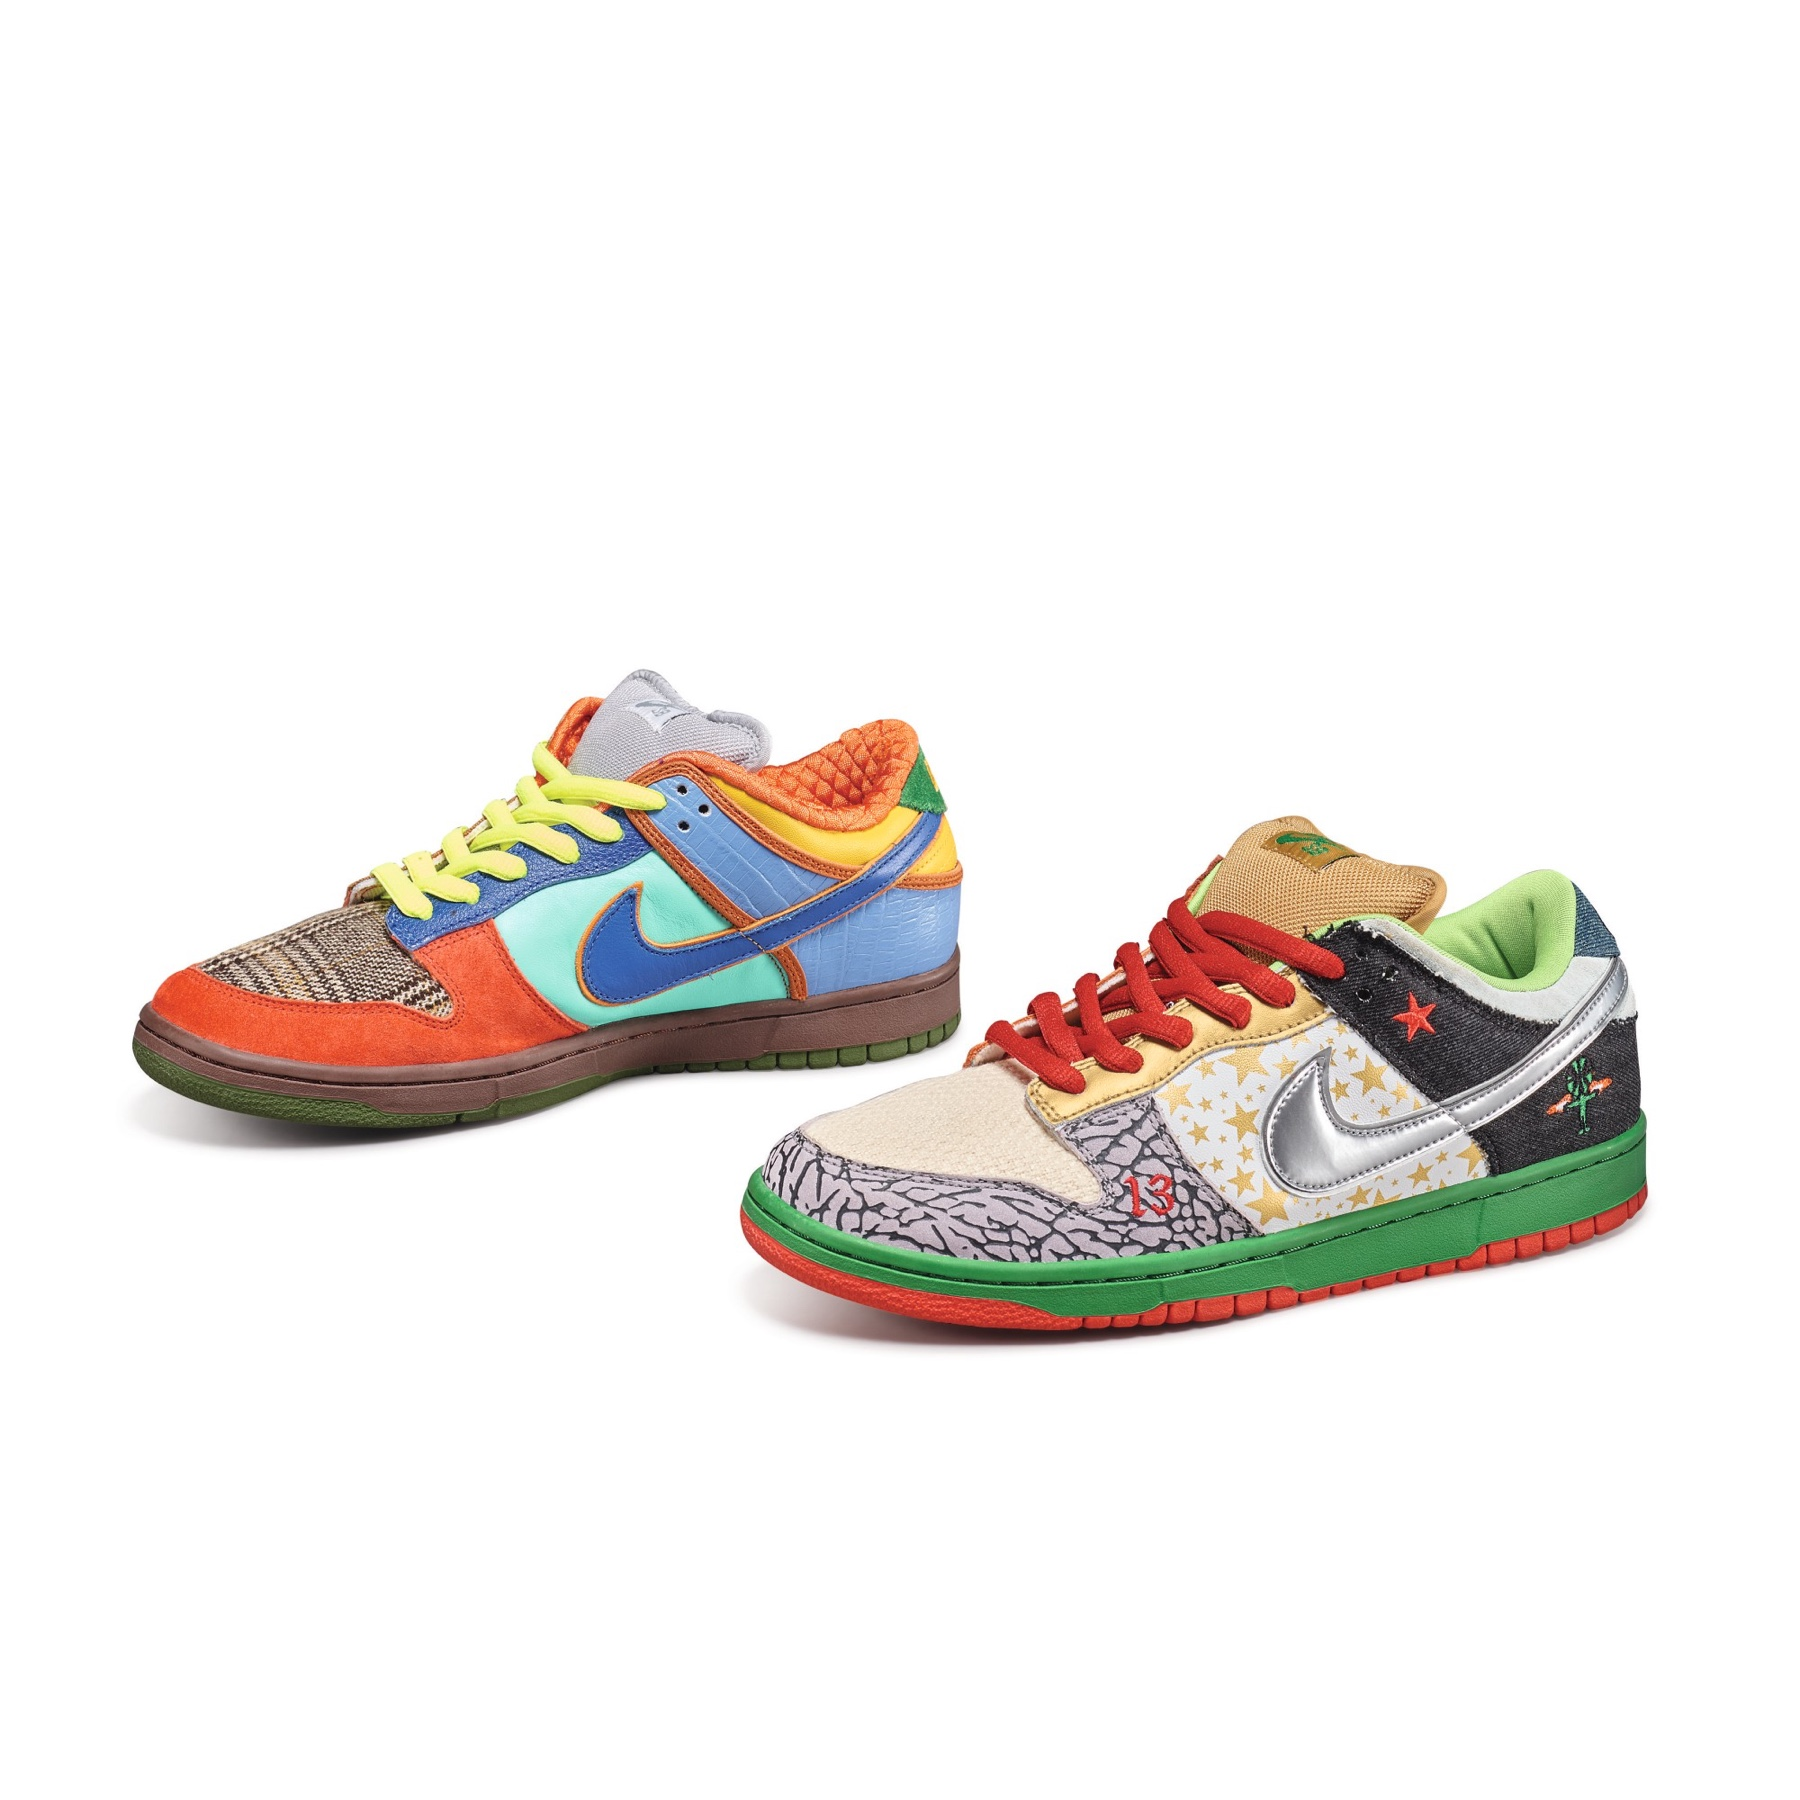 James Arizumi x Nike SB Dunk Low Pro What the Dunk